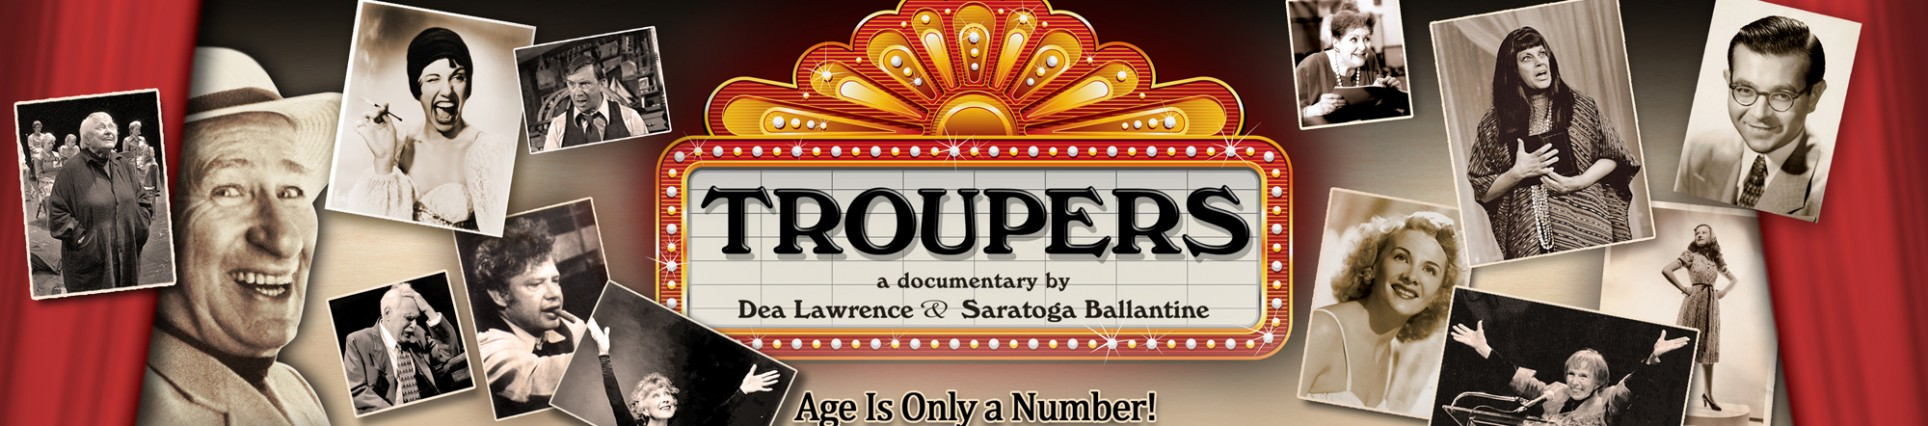 Troupers_documentary_actorslife_banner